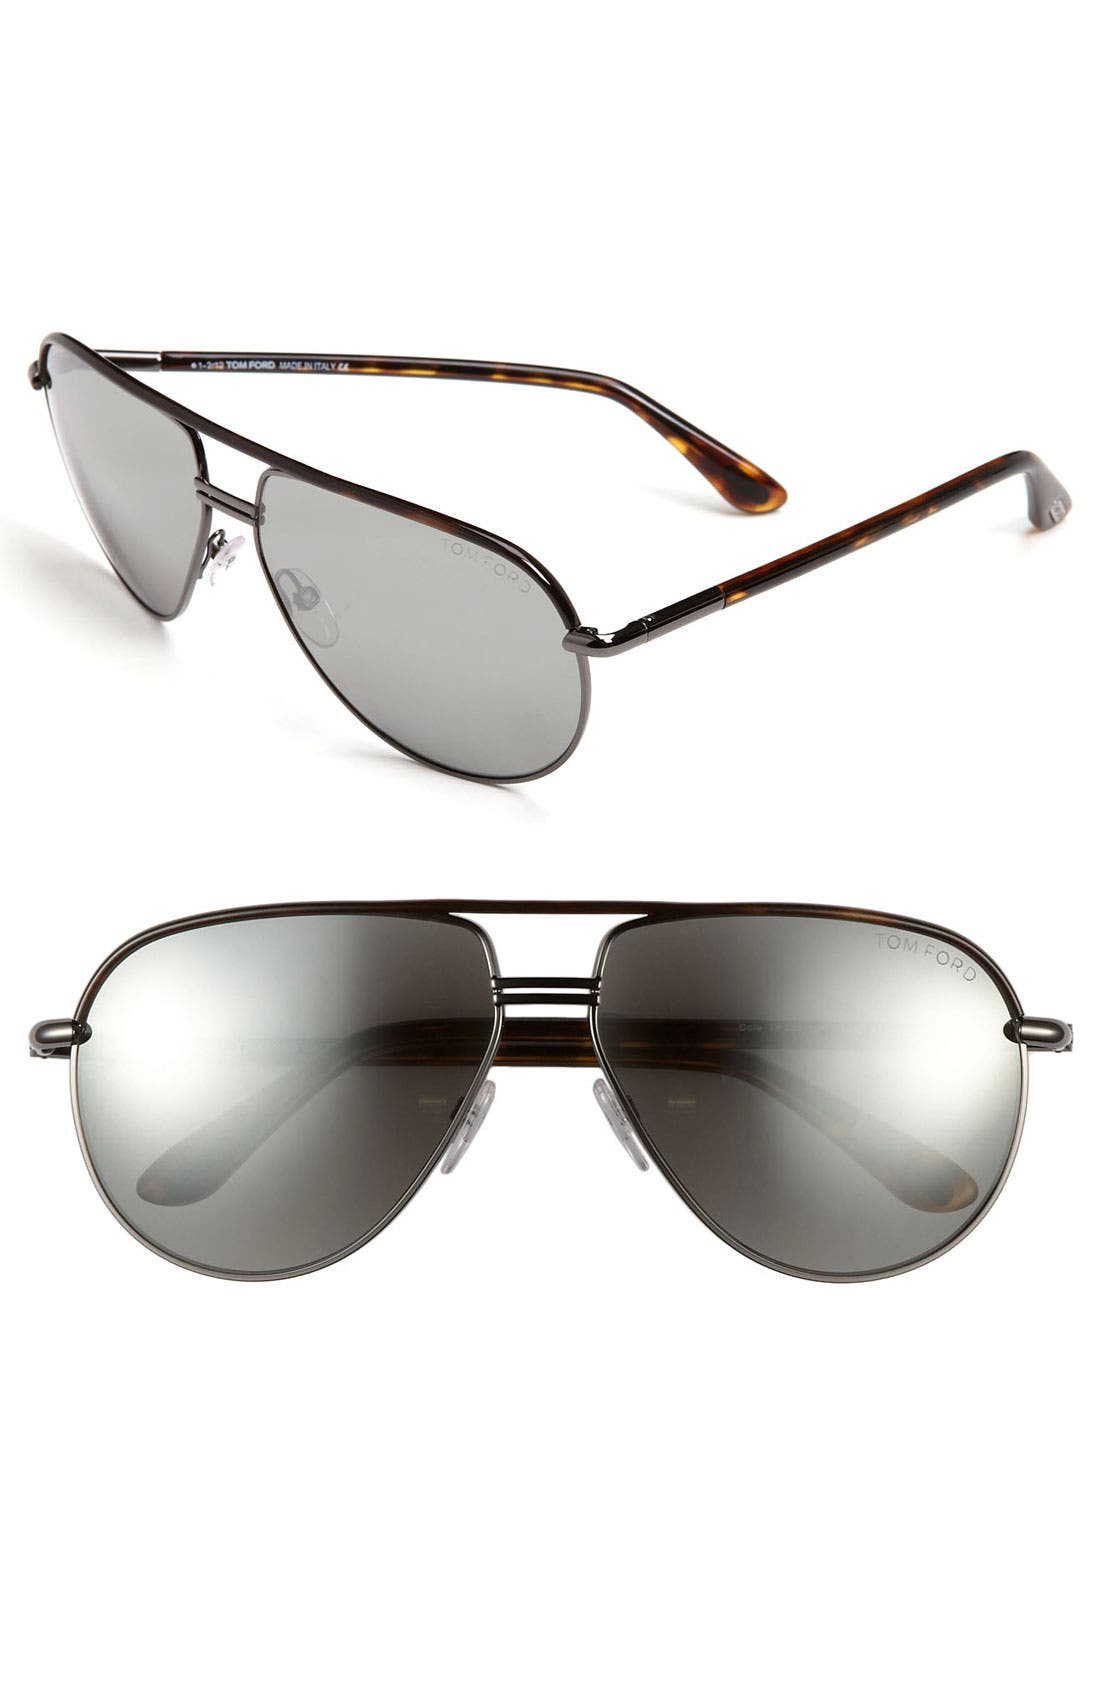 Tom Ford 'Cole' 61mm Sunglasses